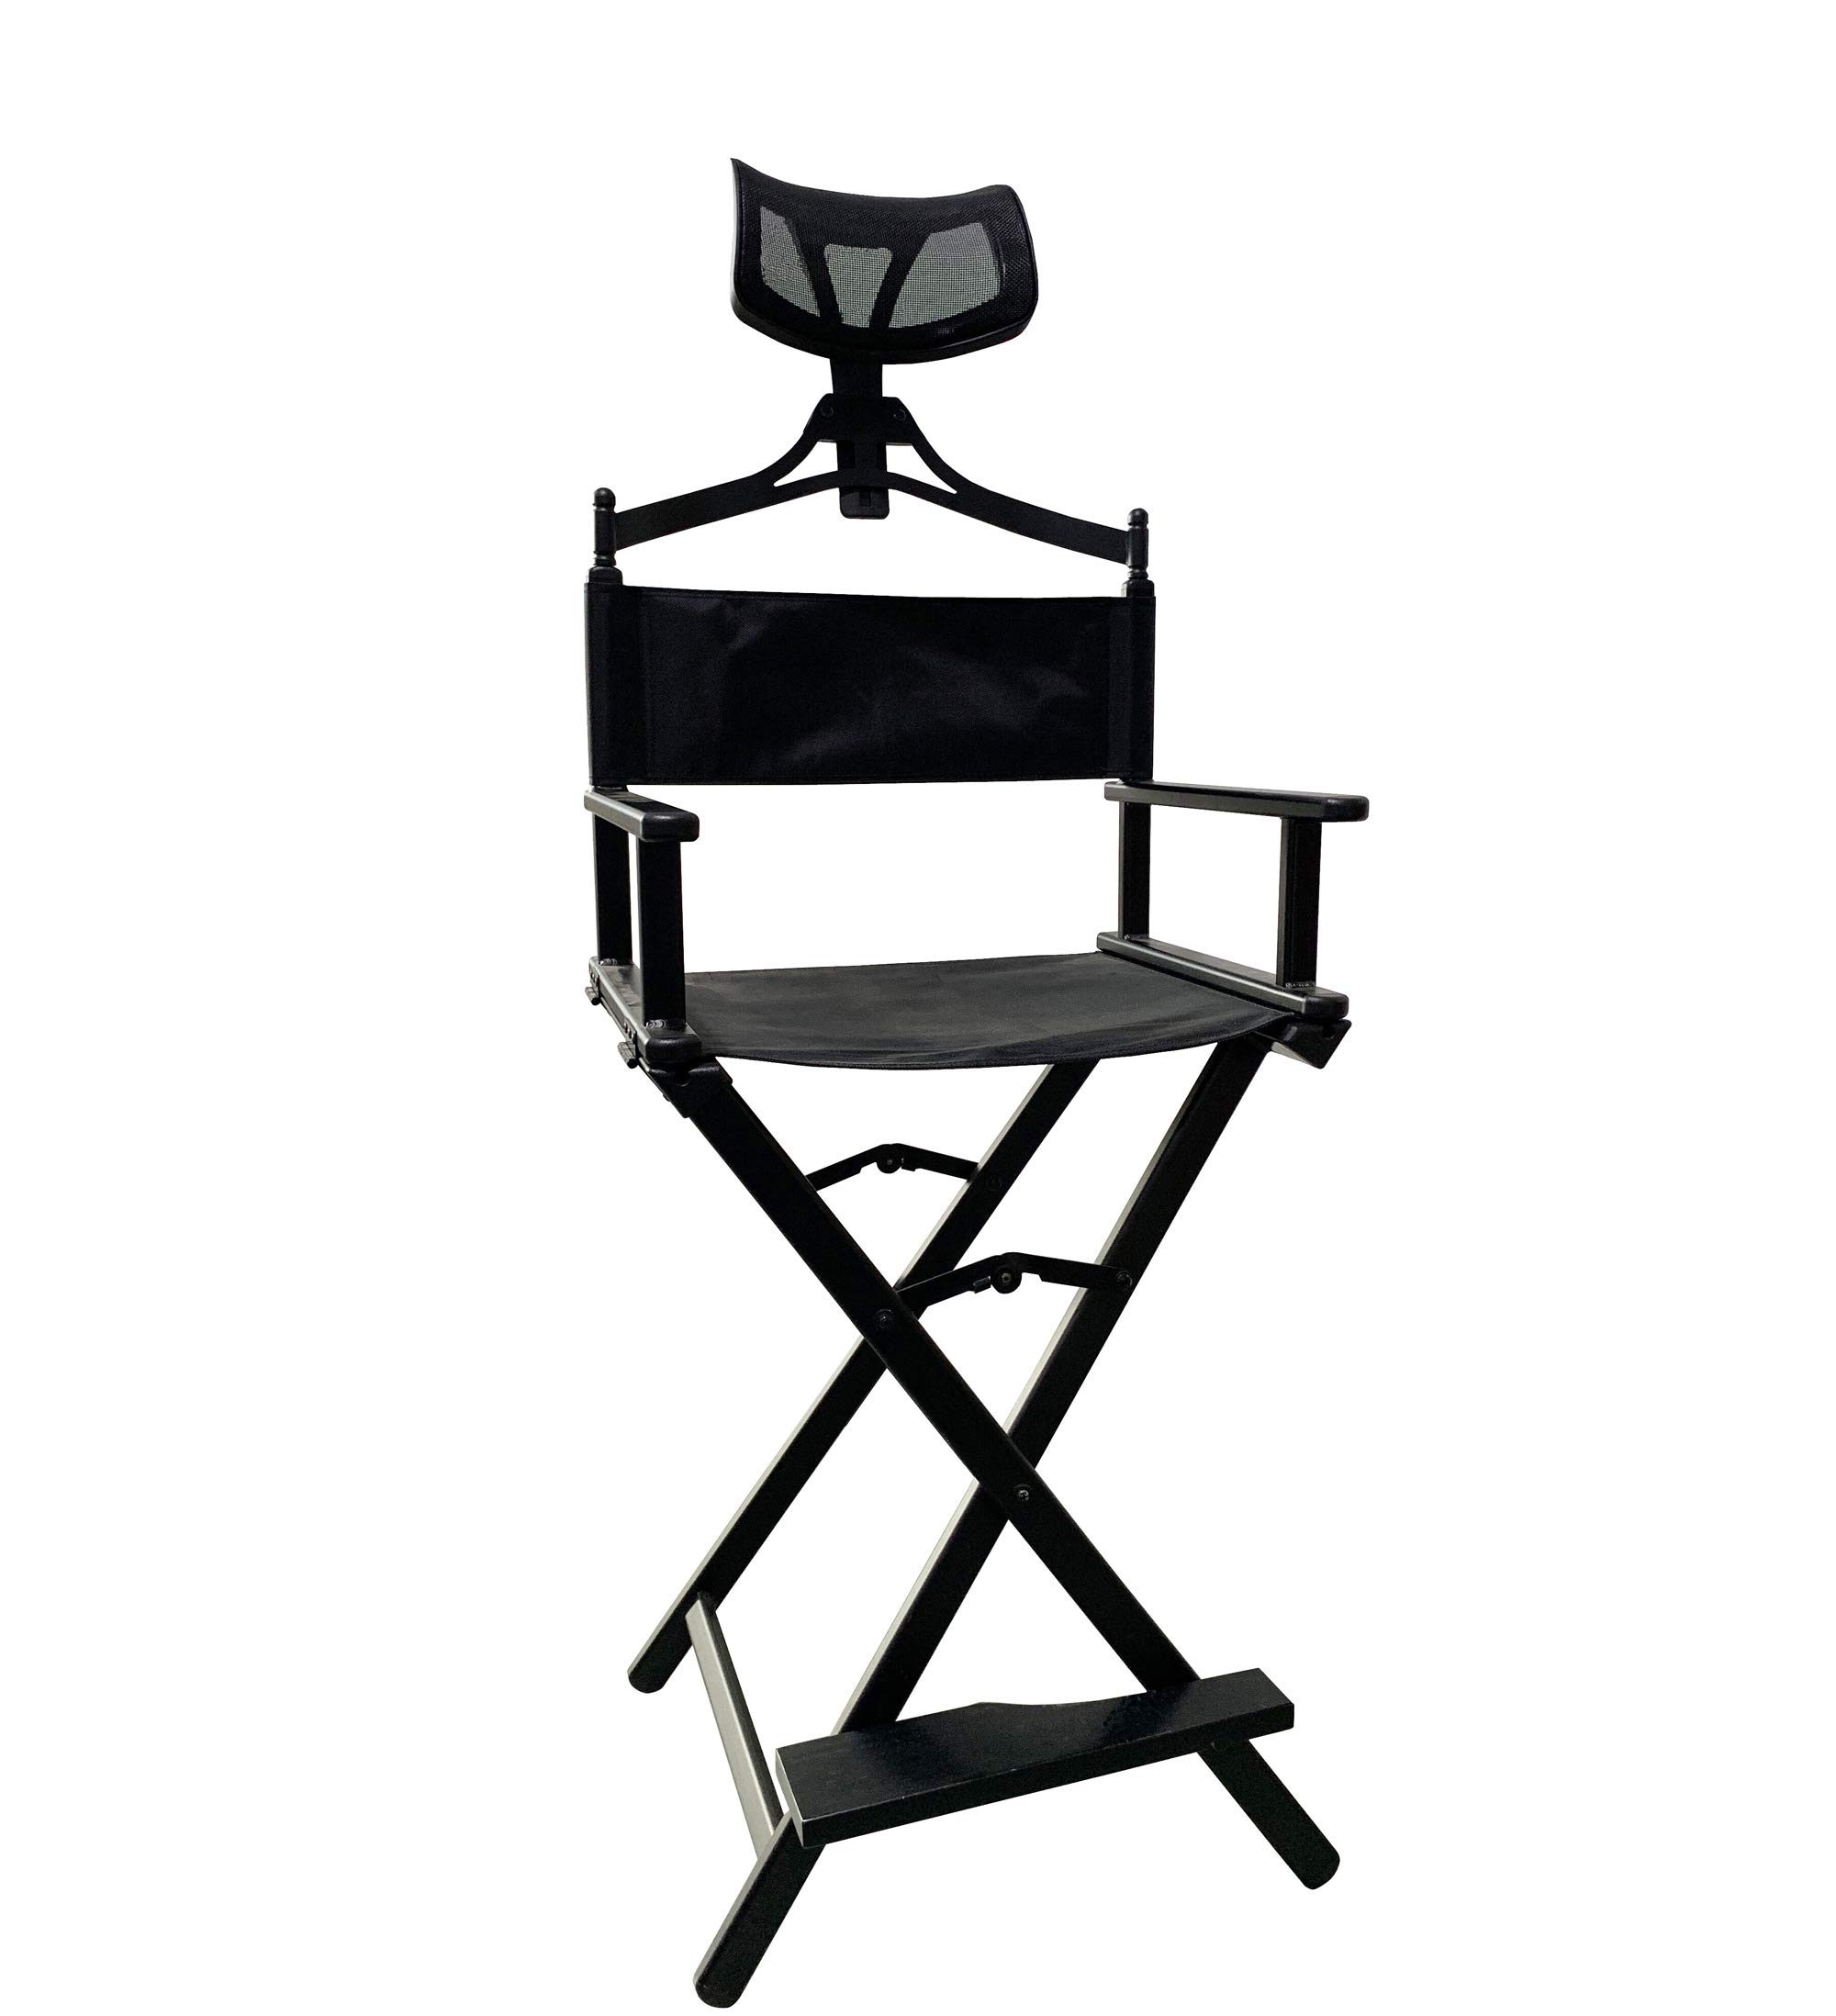 Jula Vance Foldable Tall Black Aluminum Professional Make-up Chair Director Chair with Headrest by Jula Vance